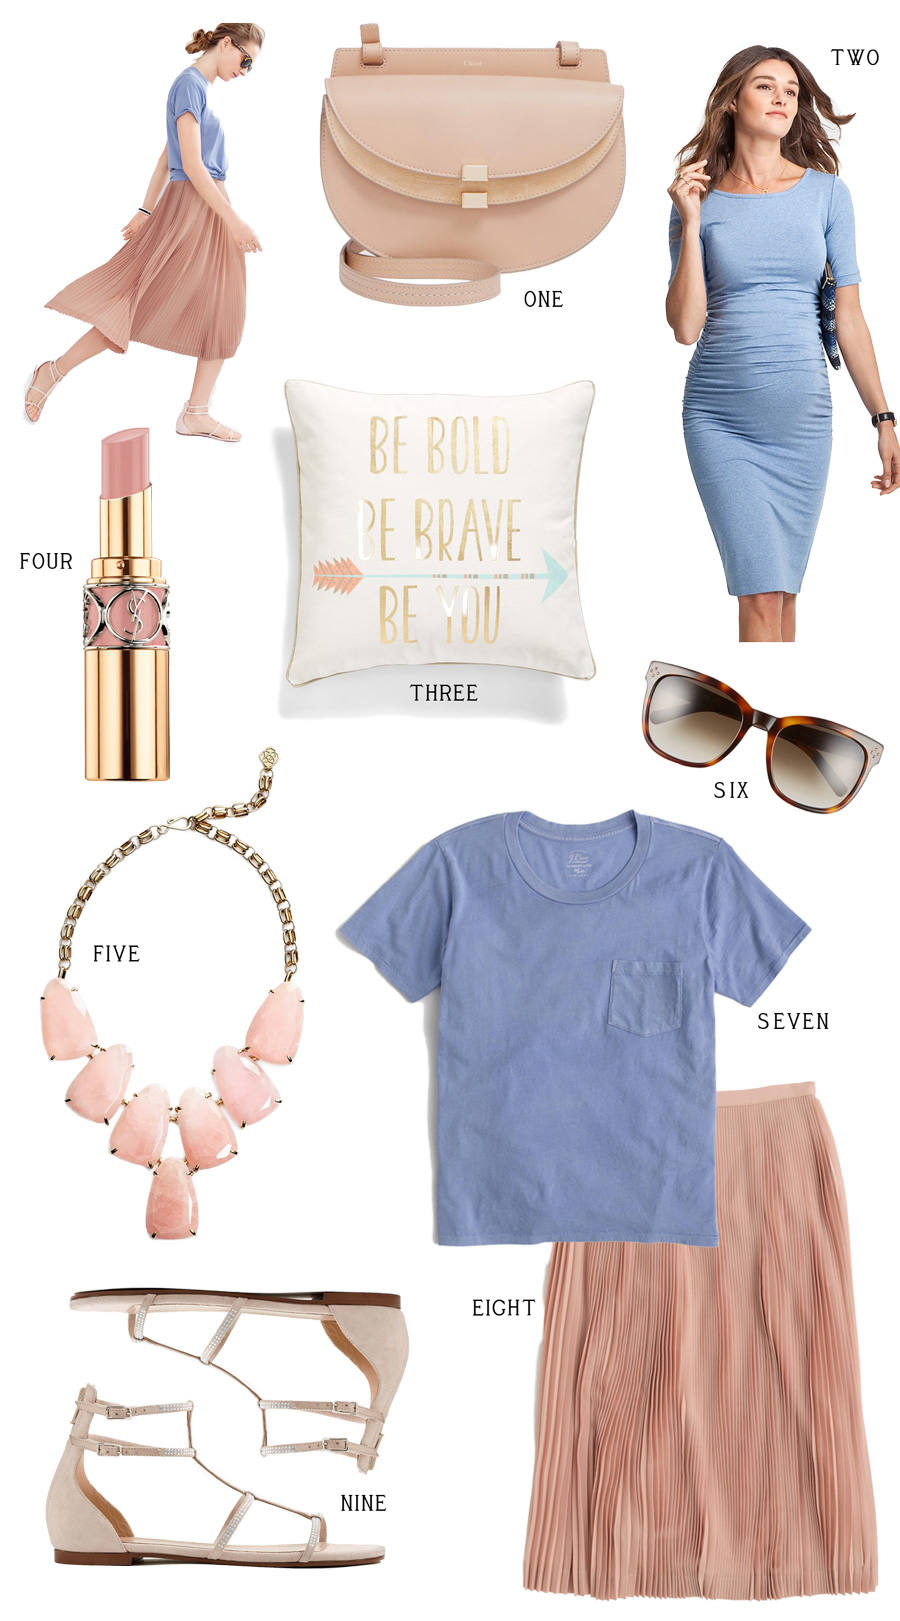 79a7295f4d8da Spring-Fashion-Inspiration -Board-with-Pantone-Color-of-the-Year-Rose-Quartz-and-Serenity